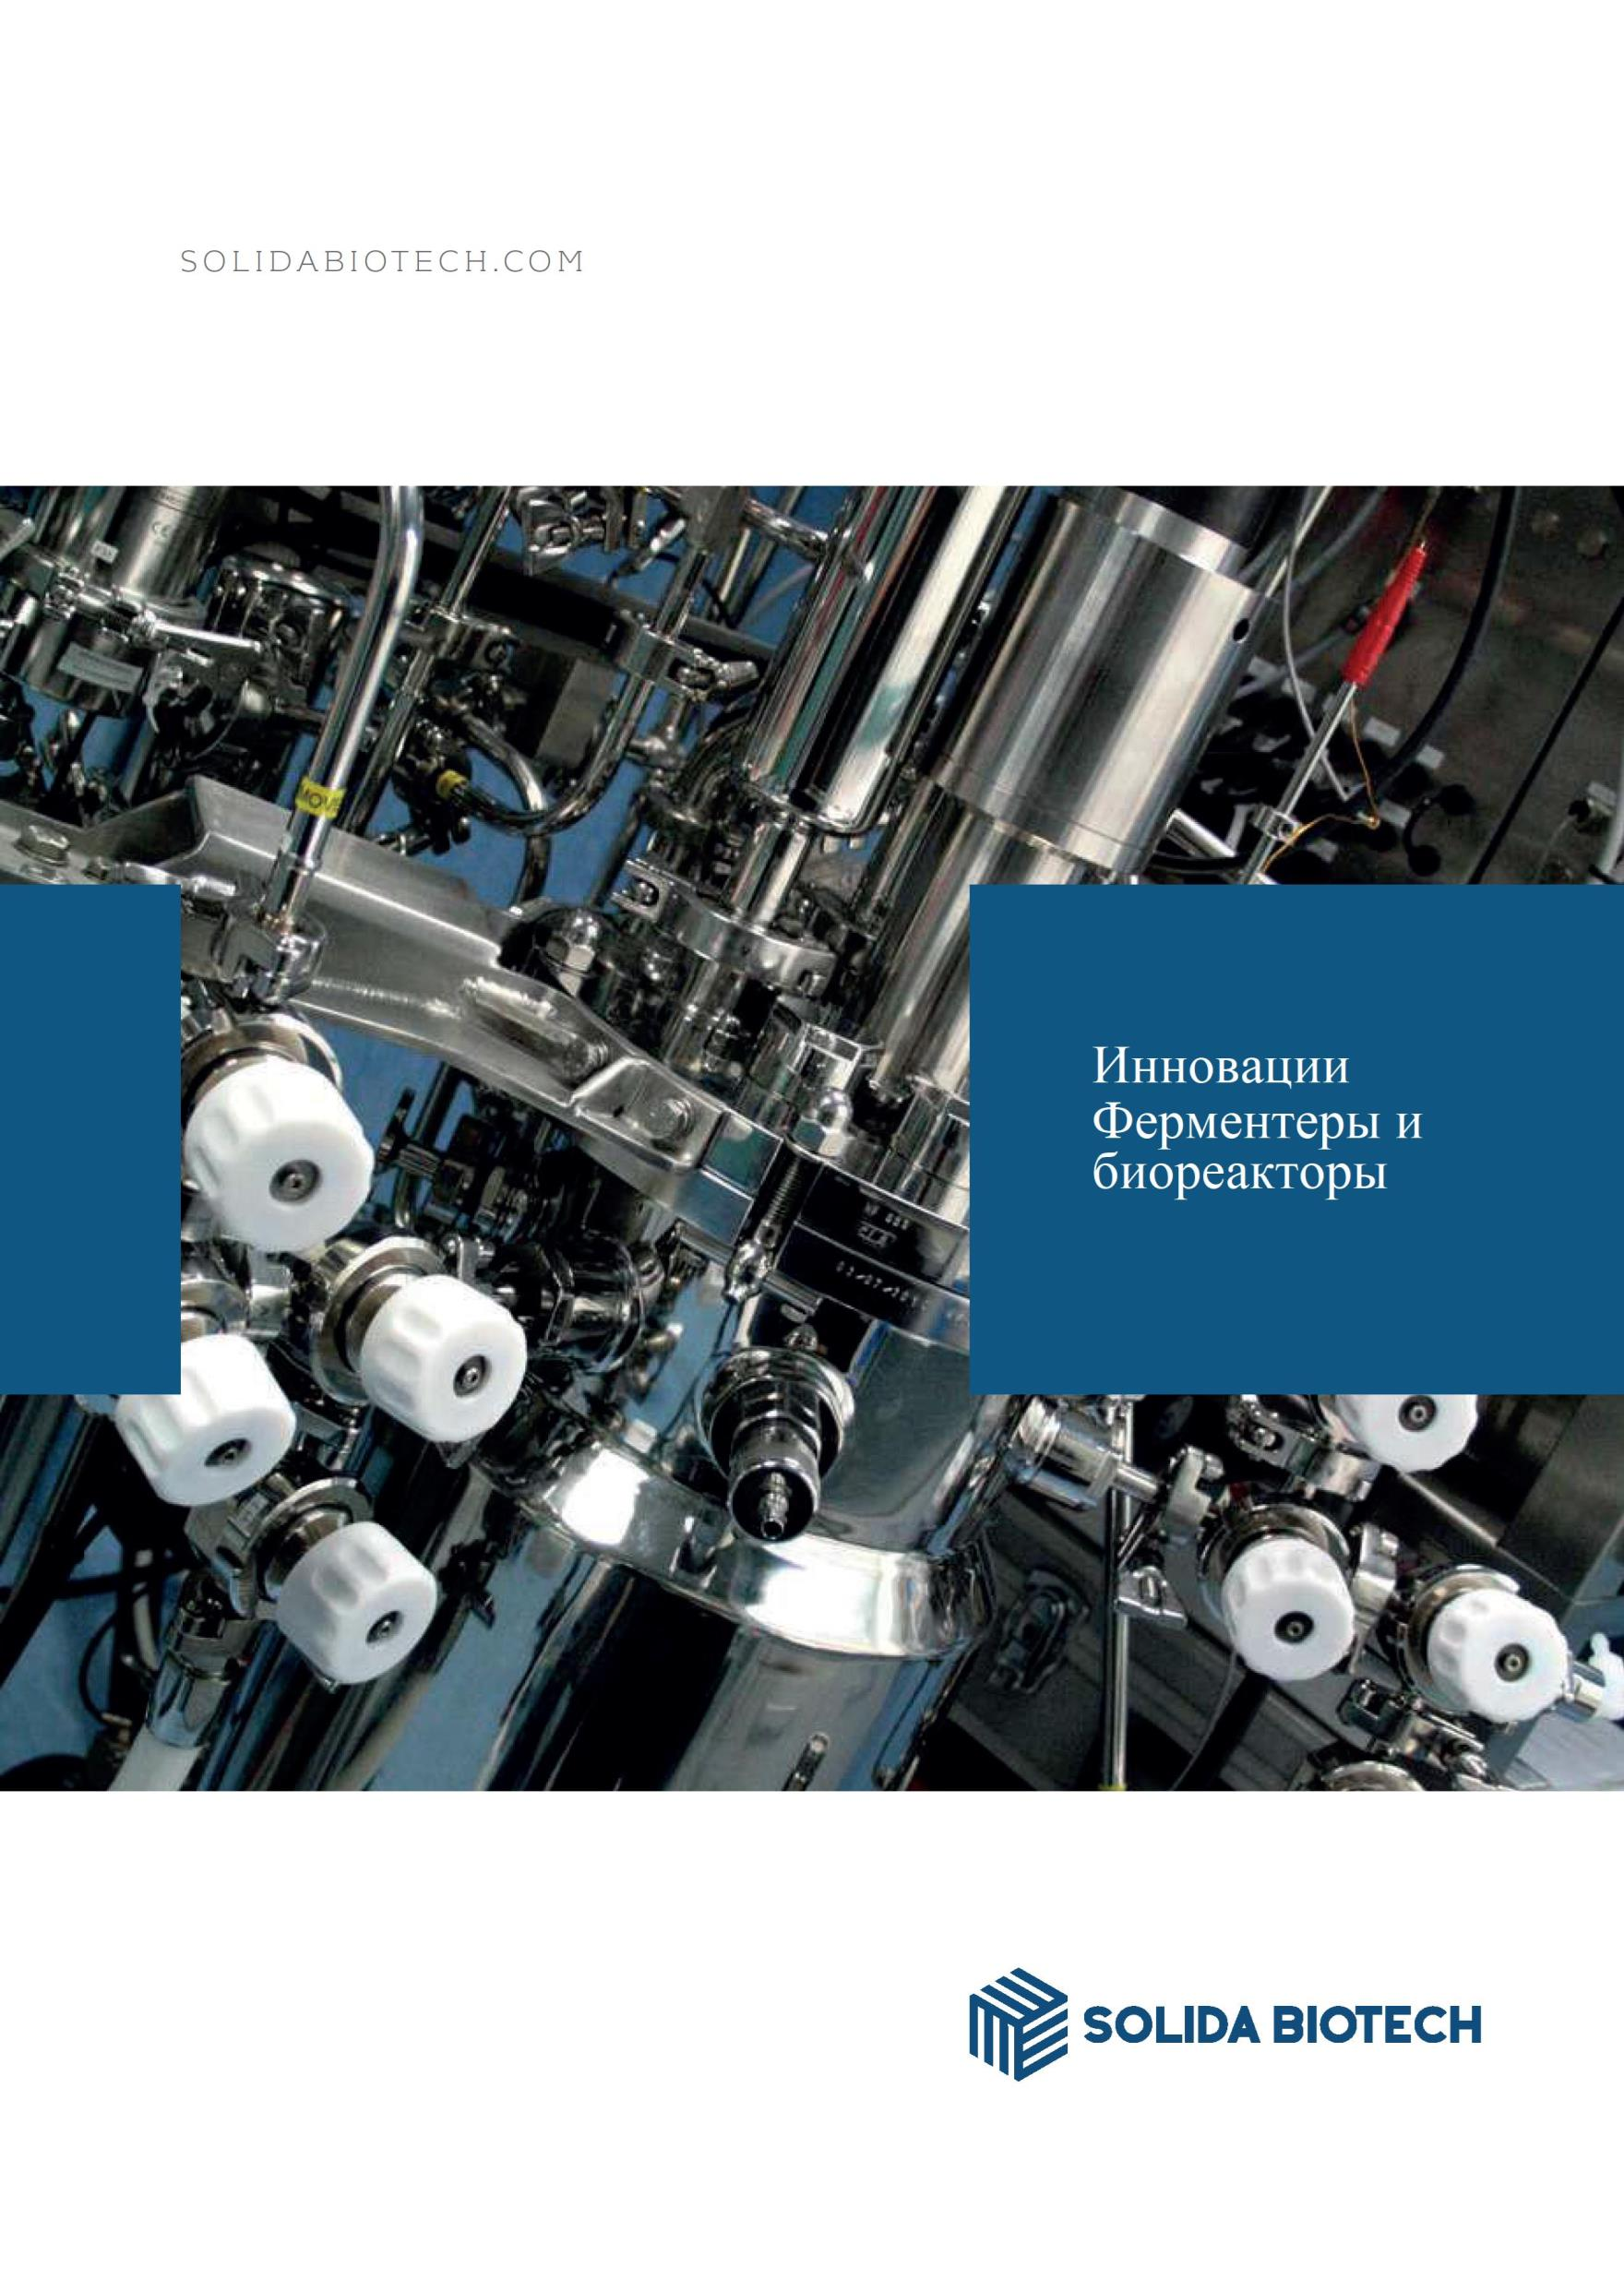 General Catalogue Solida Biotech GmBH2_compressed (2 - 0001